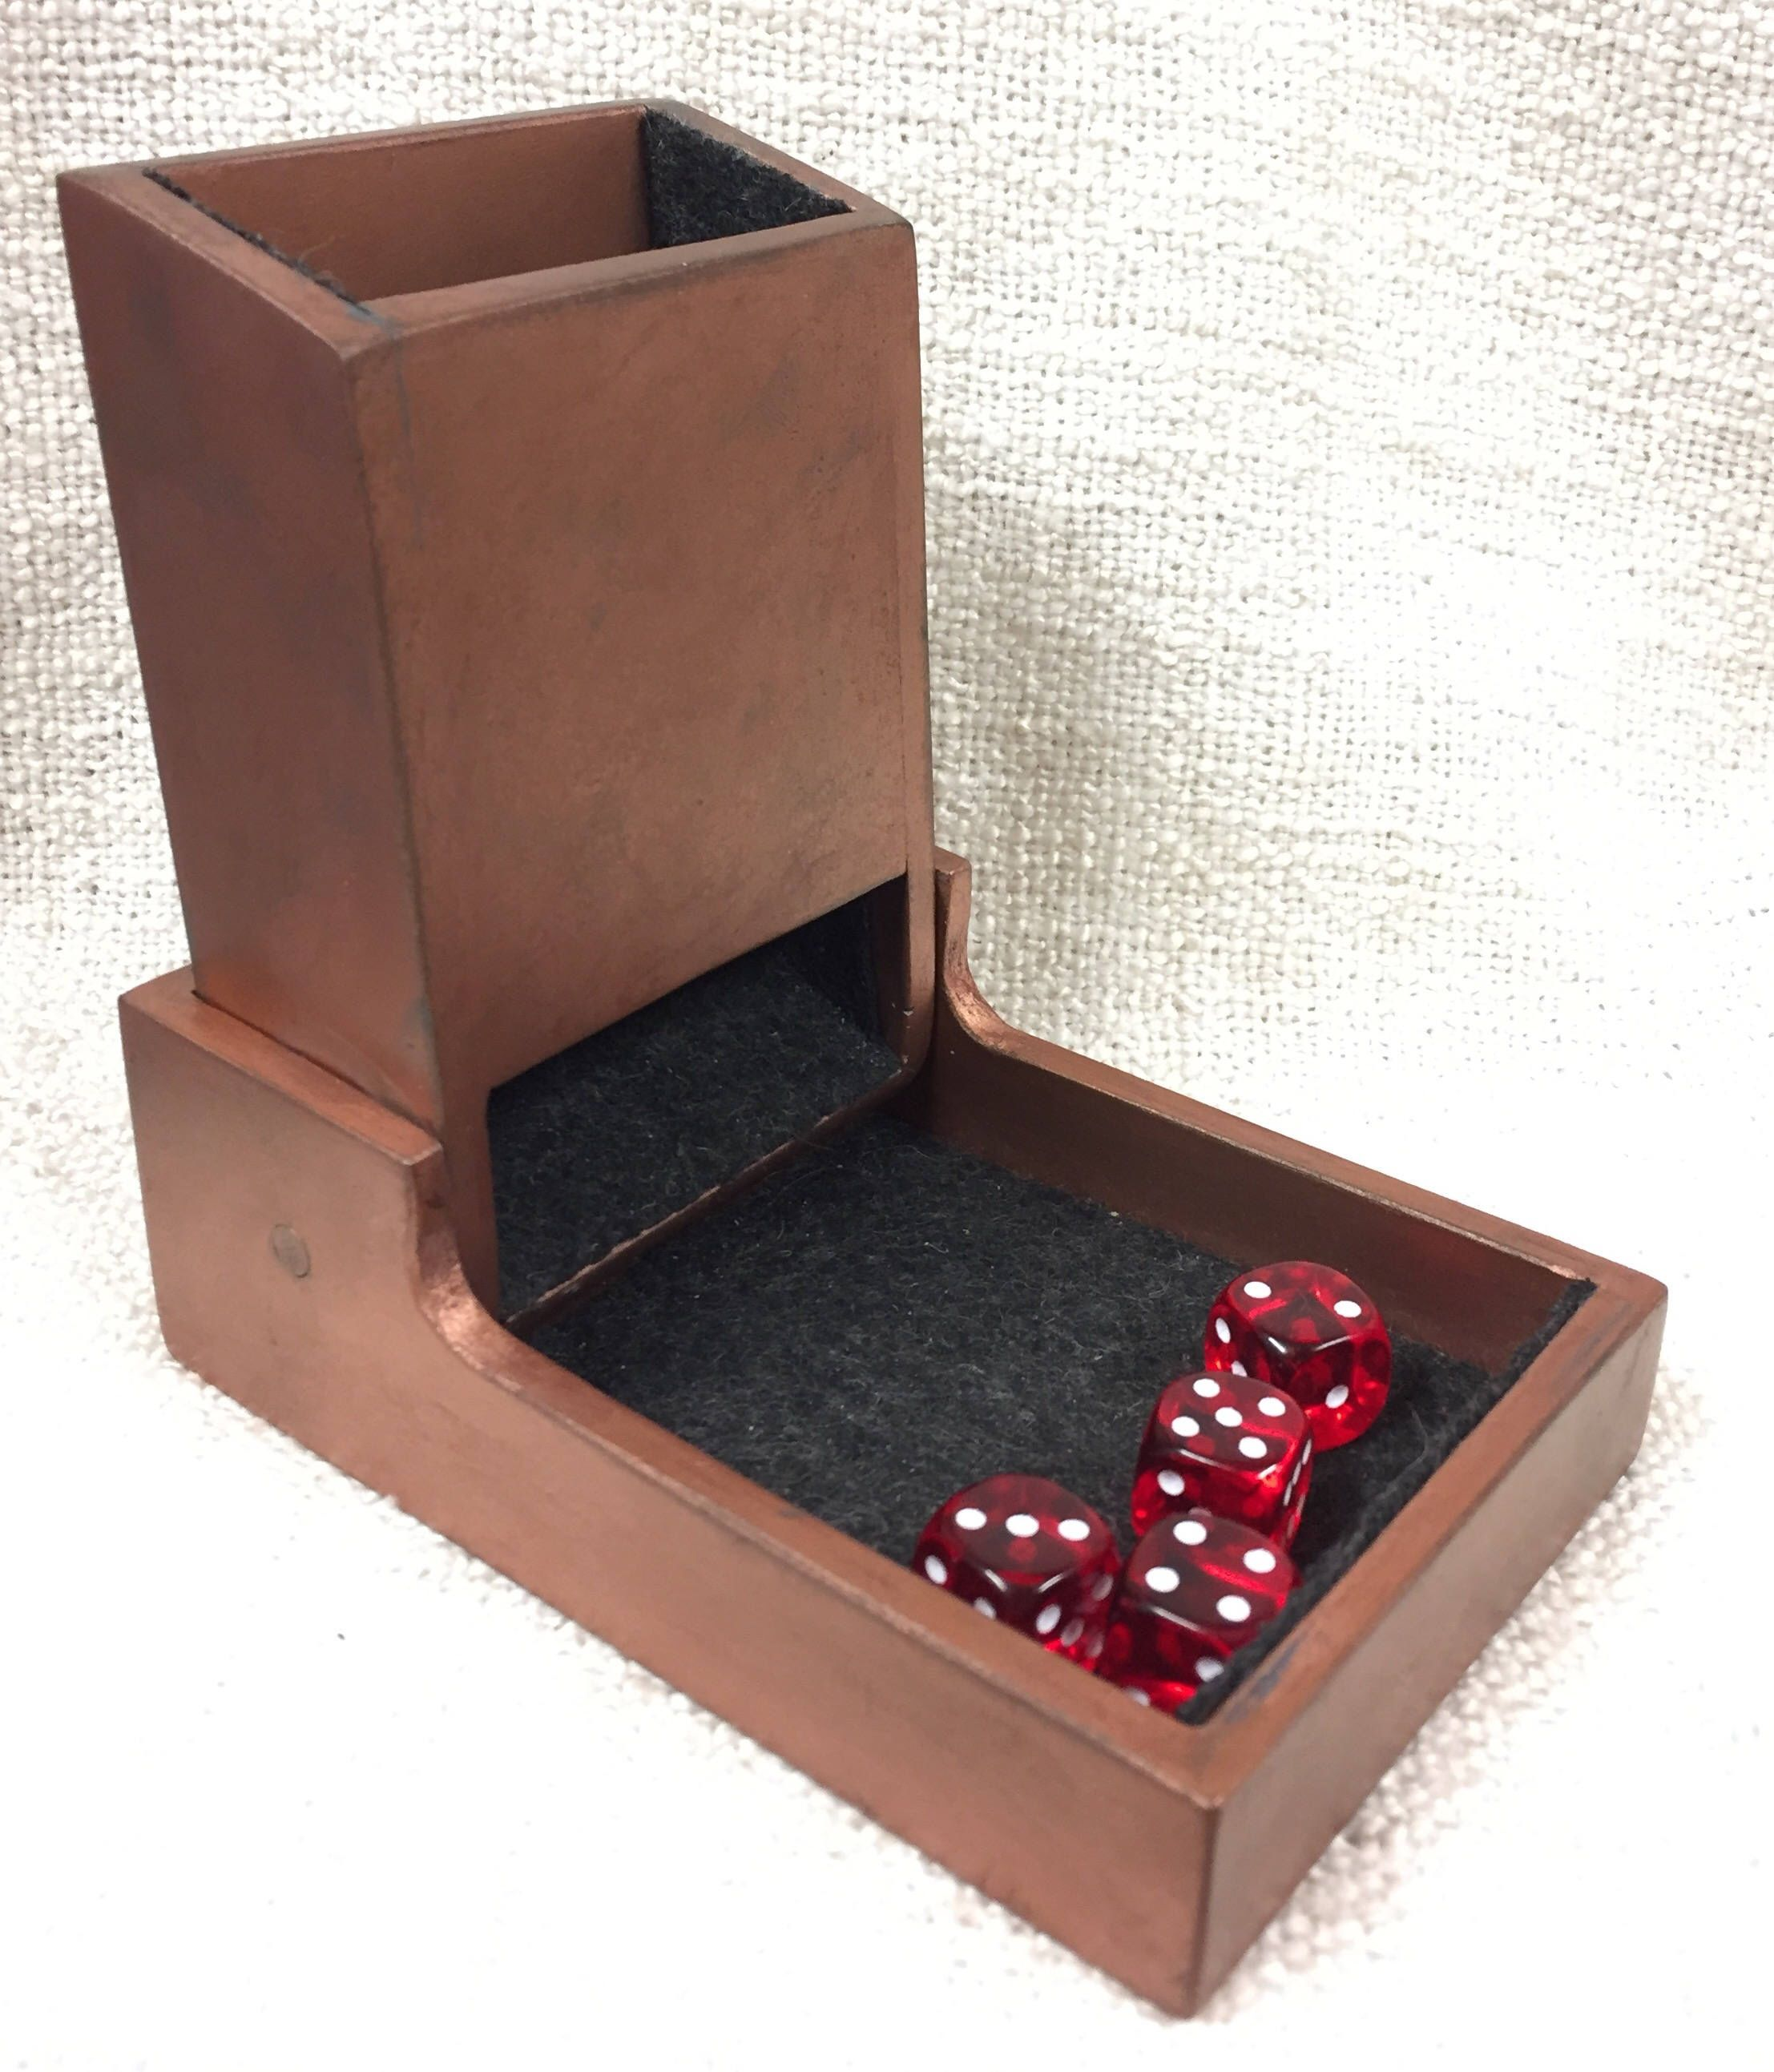 Foldable dice tower in 2020 with images dice tower